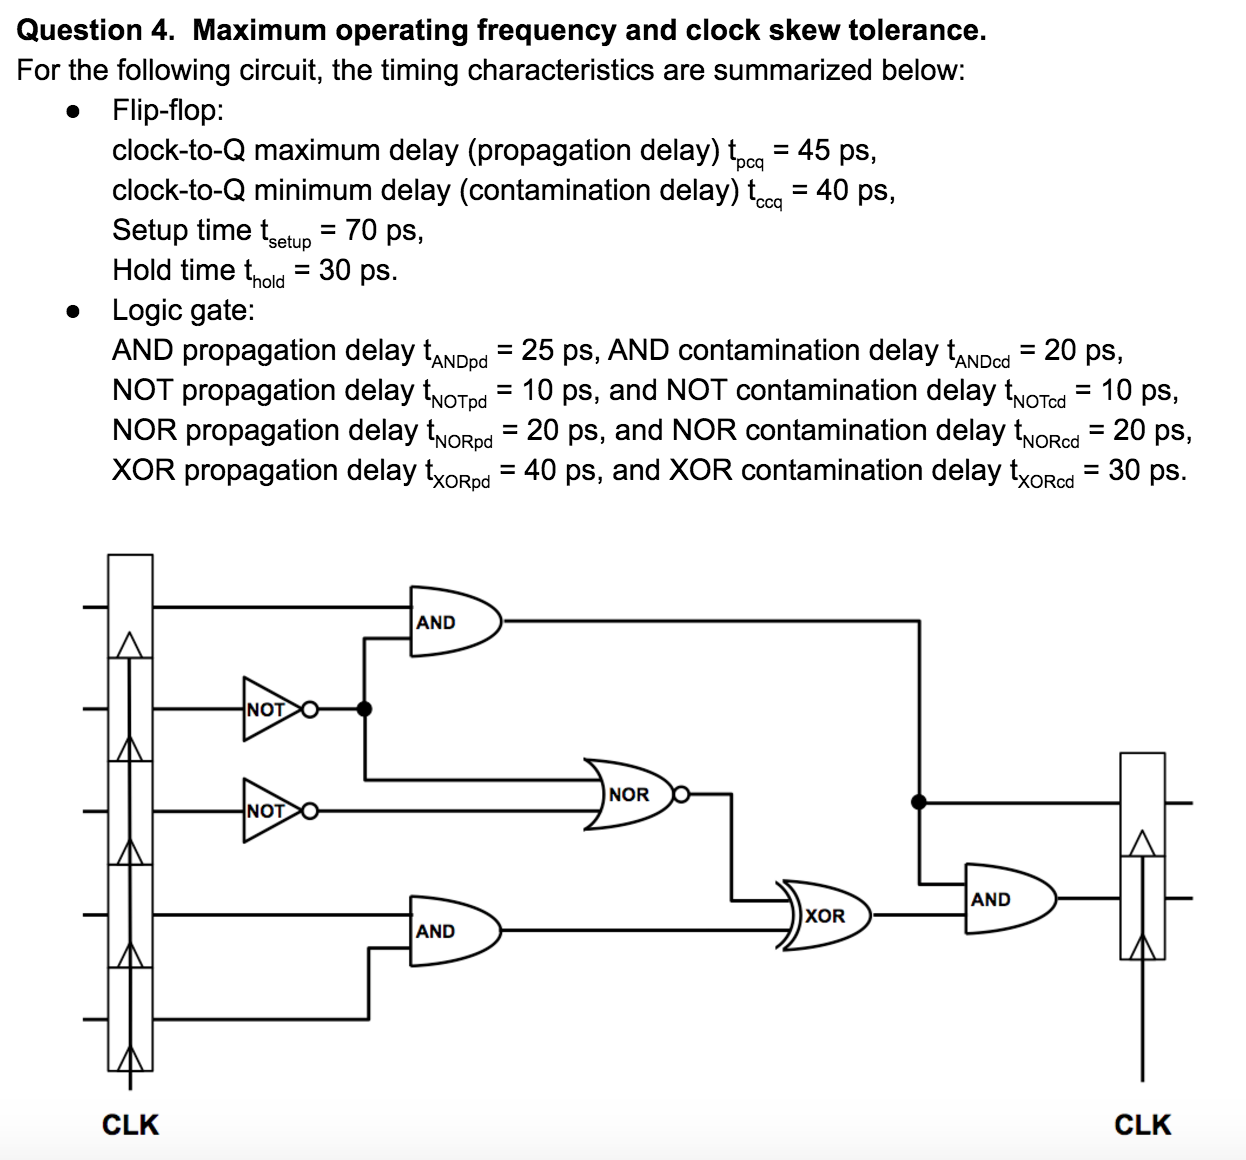 Question 4. Maximum operating frequency and clock skew tolerance For the following circuit, the timing characteristics are summarized below: . Flip-flop clock-to-Q maximum delay (propagation delay) tpcq-45 ps. clock-to-Q minimum delay (contamination delay) t- 40 ps, Setup time tsetup- 70 ps, Hold time thold 30 ps » Logic gate: AND propagation delay tAND NOT propagation delay twoTod 1 NOR propagation delay NoRpd XOR propagation delay txoRpd 40 ps, ,-25 ps. AND contamination delay tANDod-20 ps. pd d 10 ps, and NOT contamination delay tvoTcd - 10 ps, d- , and NOR contamination delay tNoRcd 20 ps, NoTpd 10 ps 20 ps and XOR contamination delay txoRcd- 30 ps AND NOT NOR NOT AND XOR AND CLK CLK